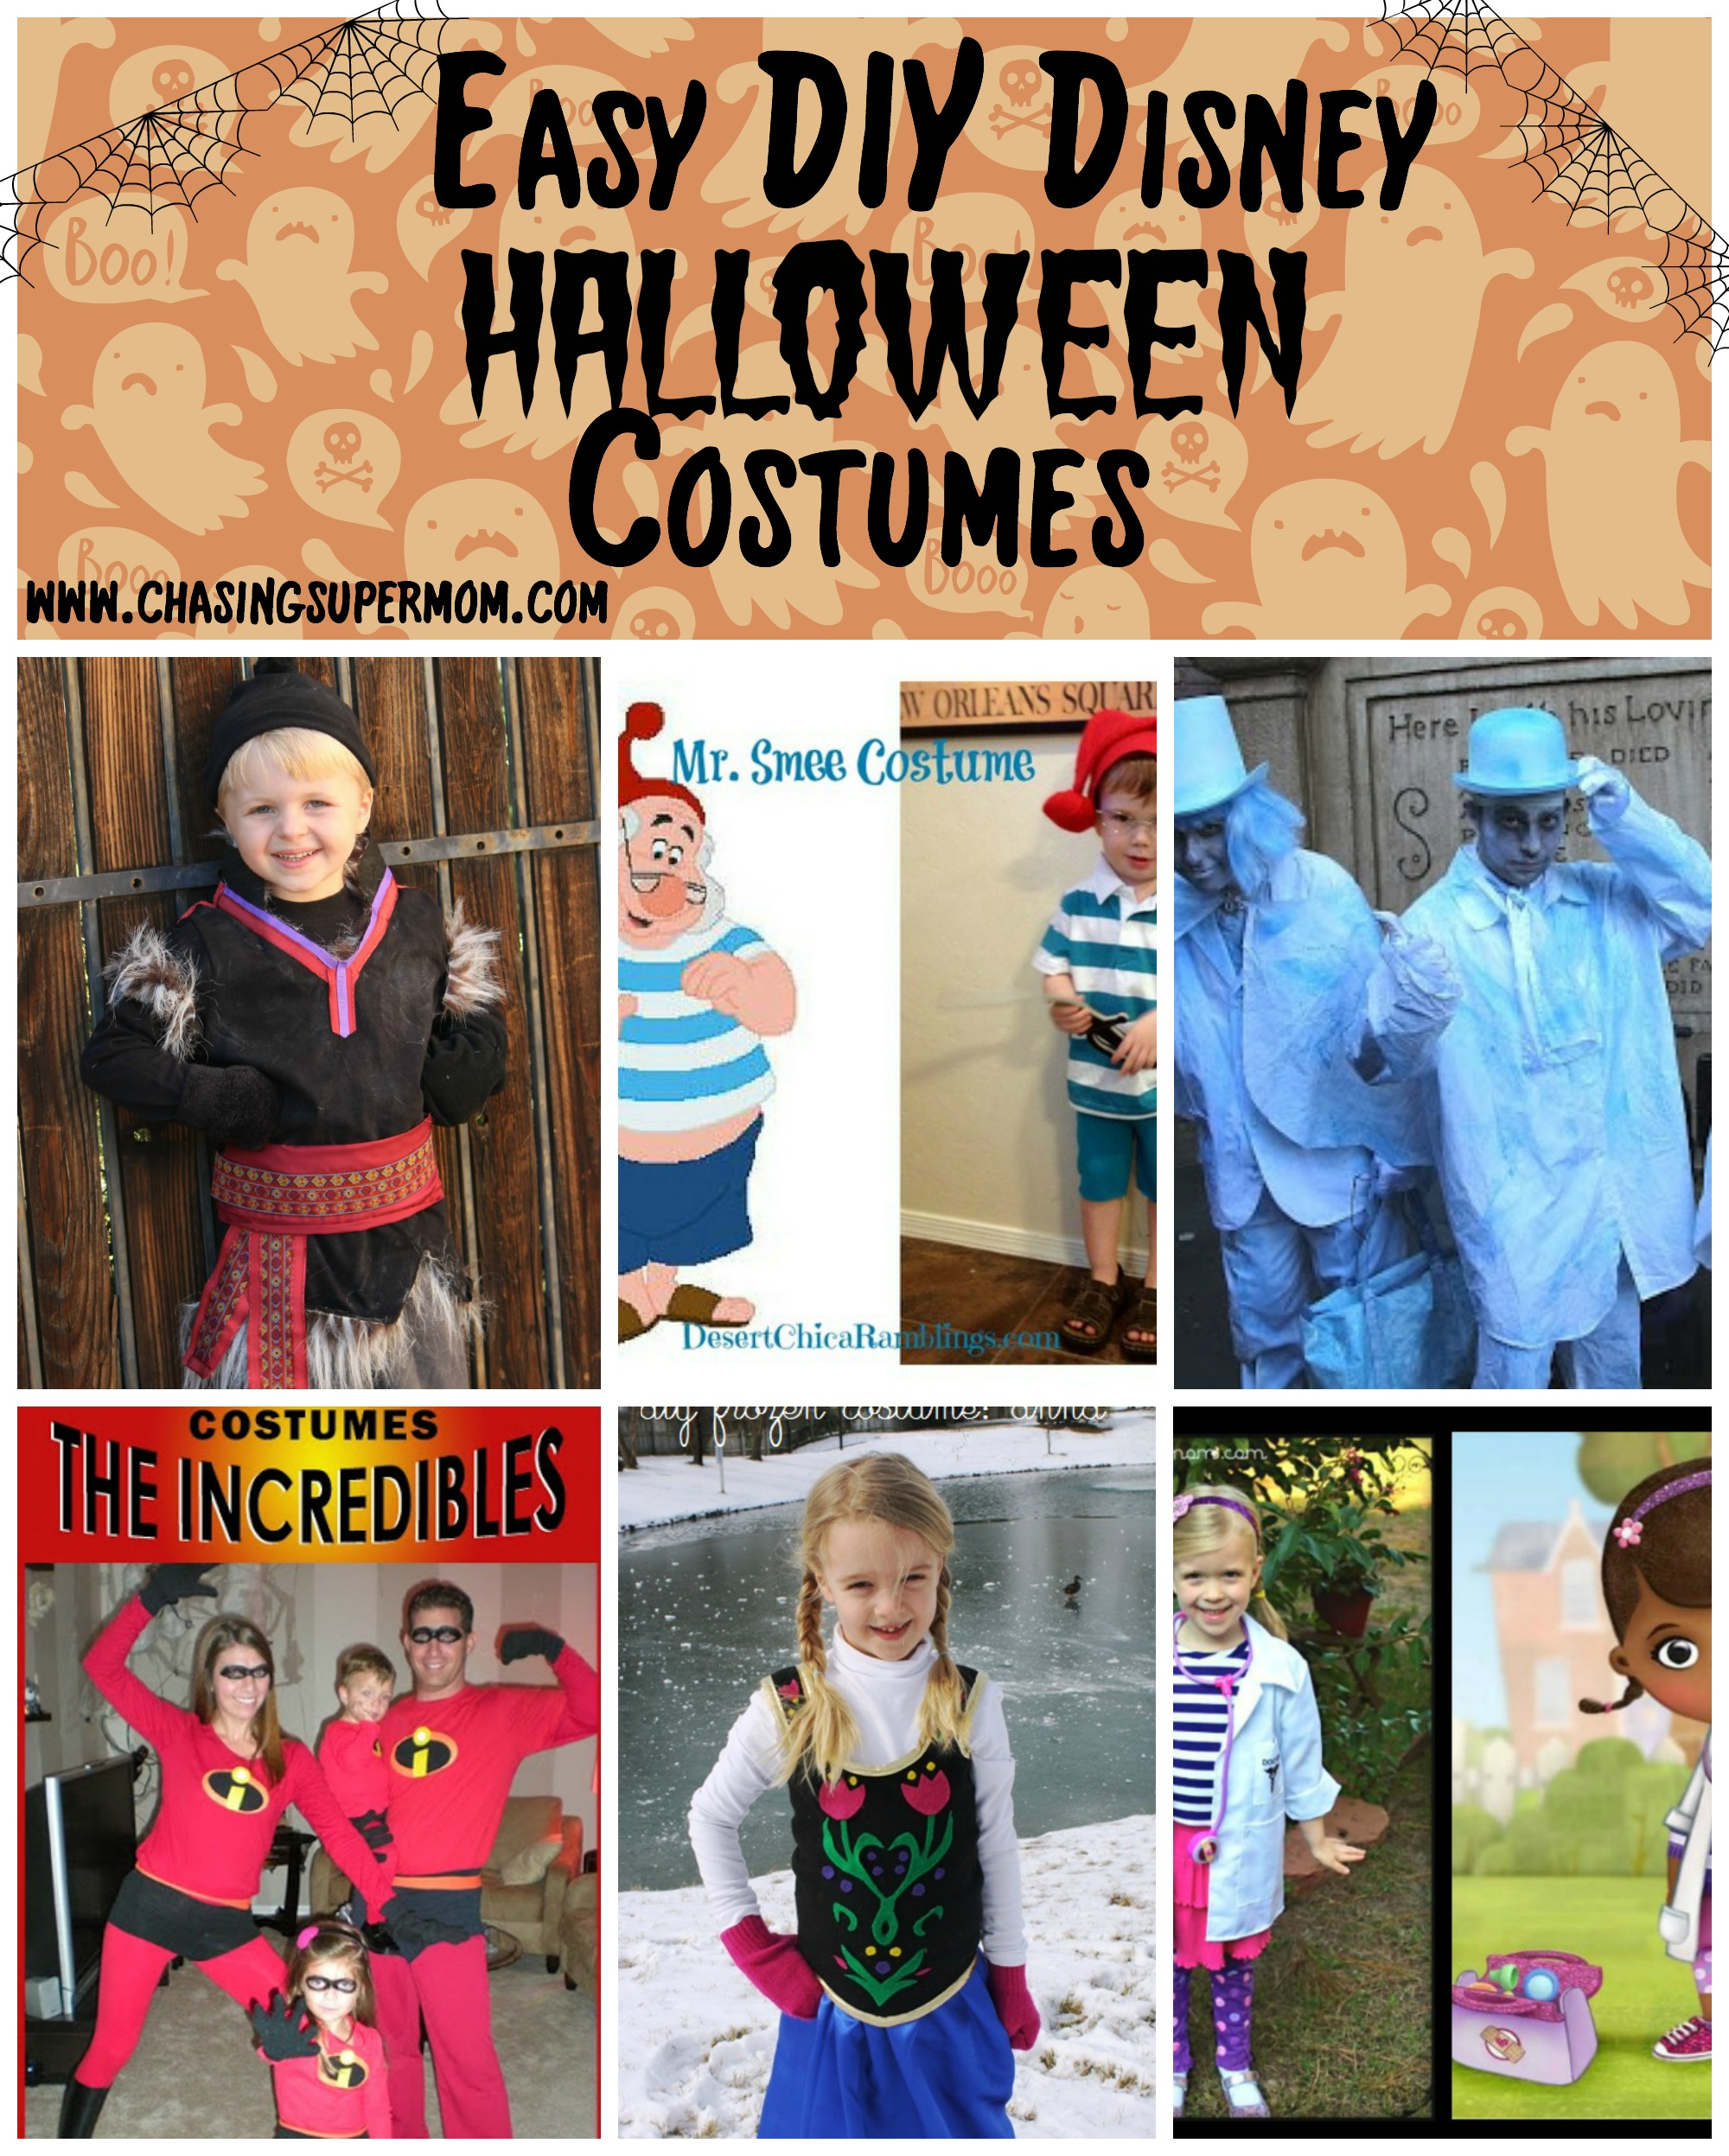 diy disney halloween costume round-up - easy diy disney costumes